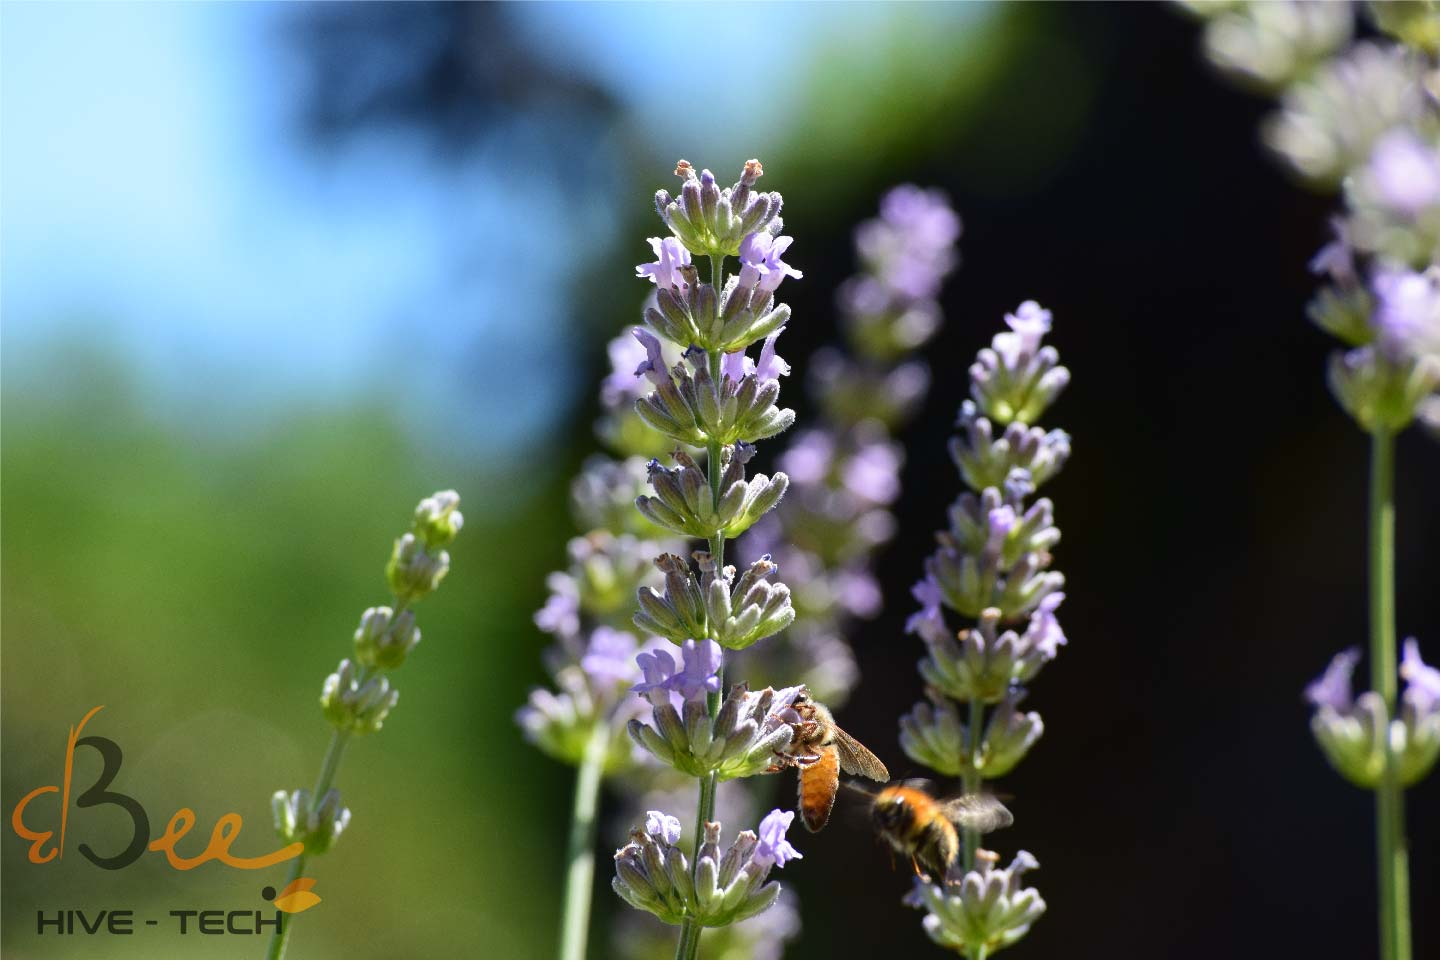 3bee Picture